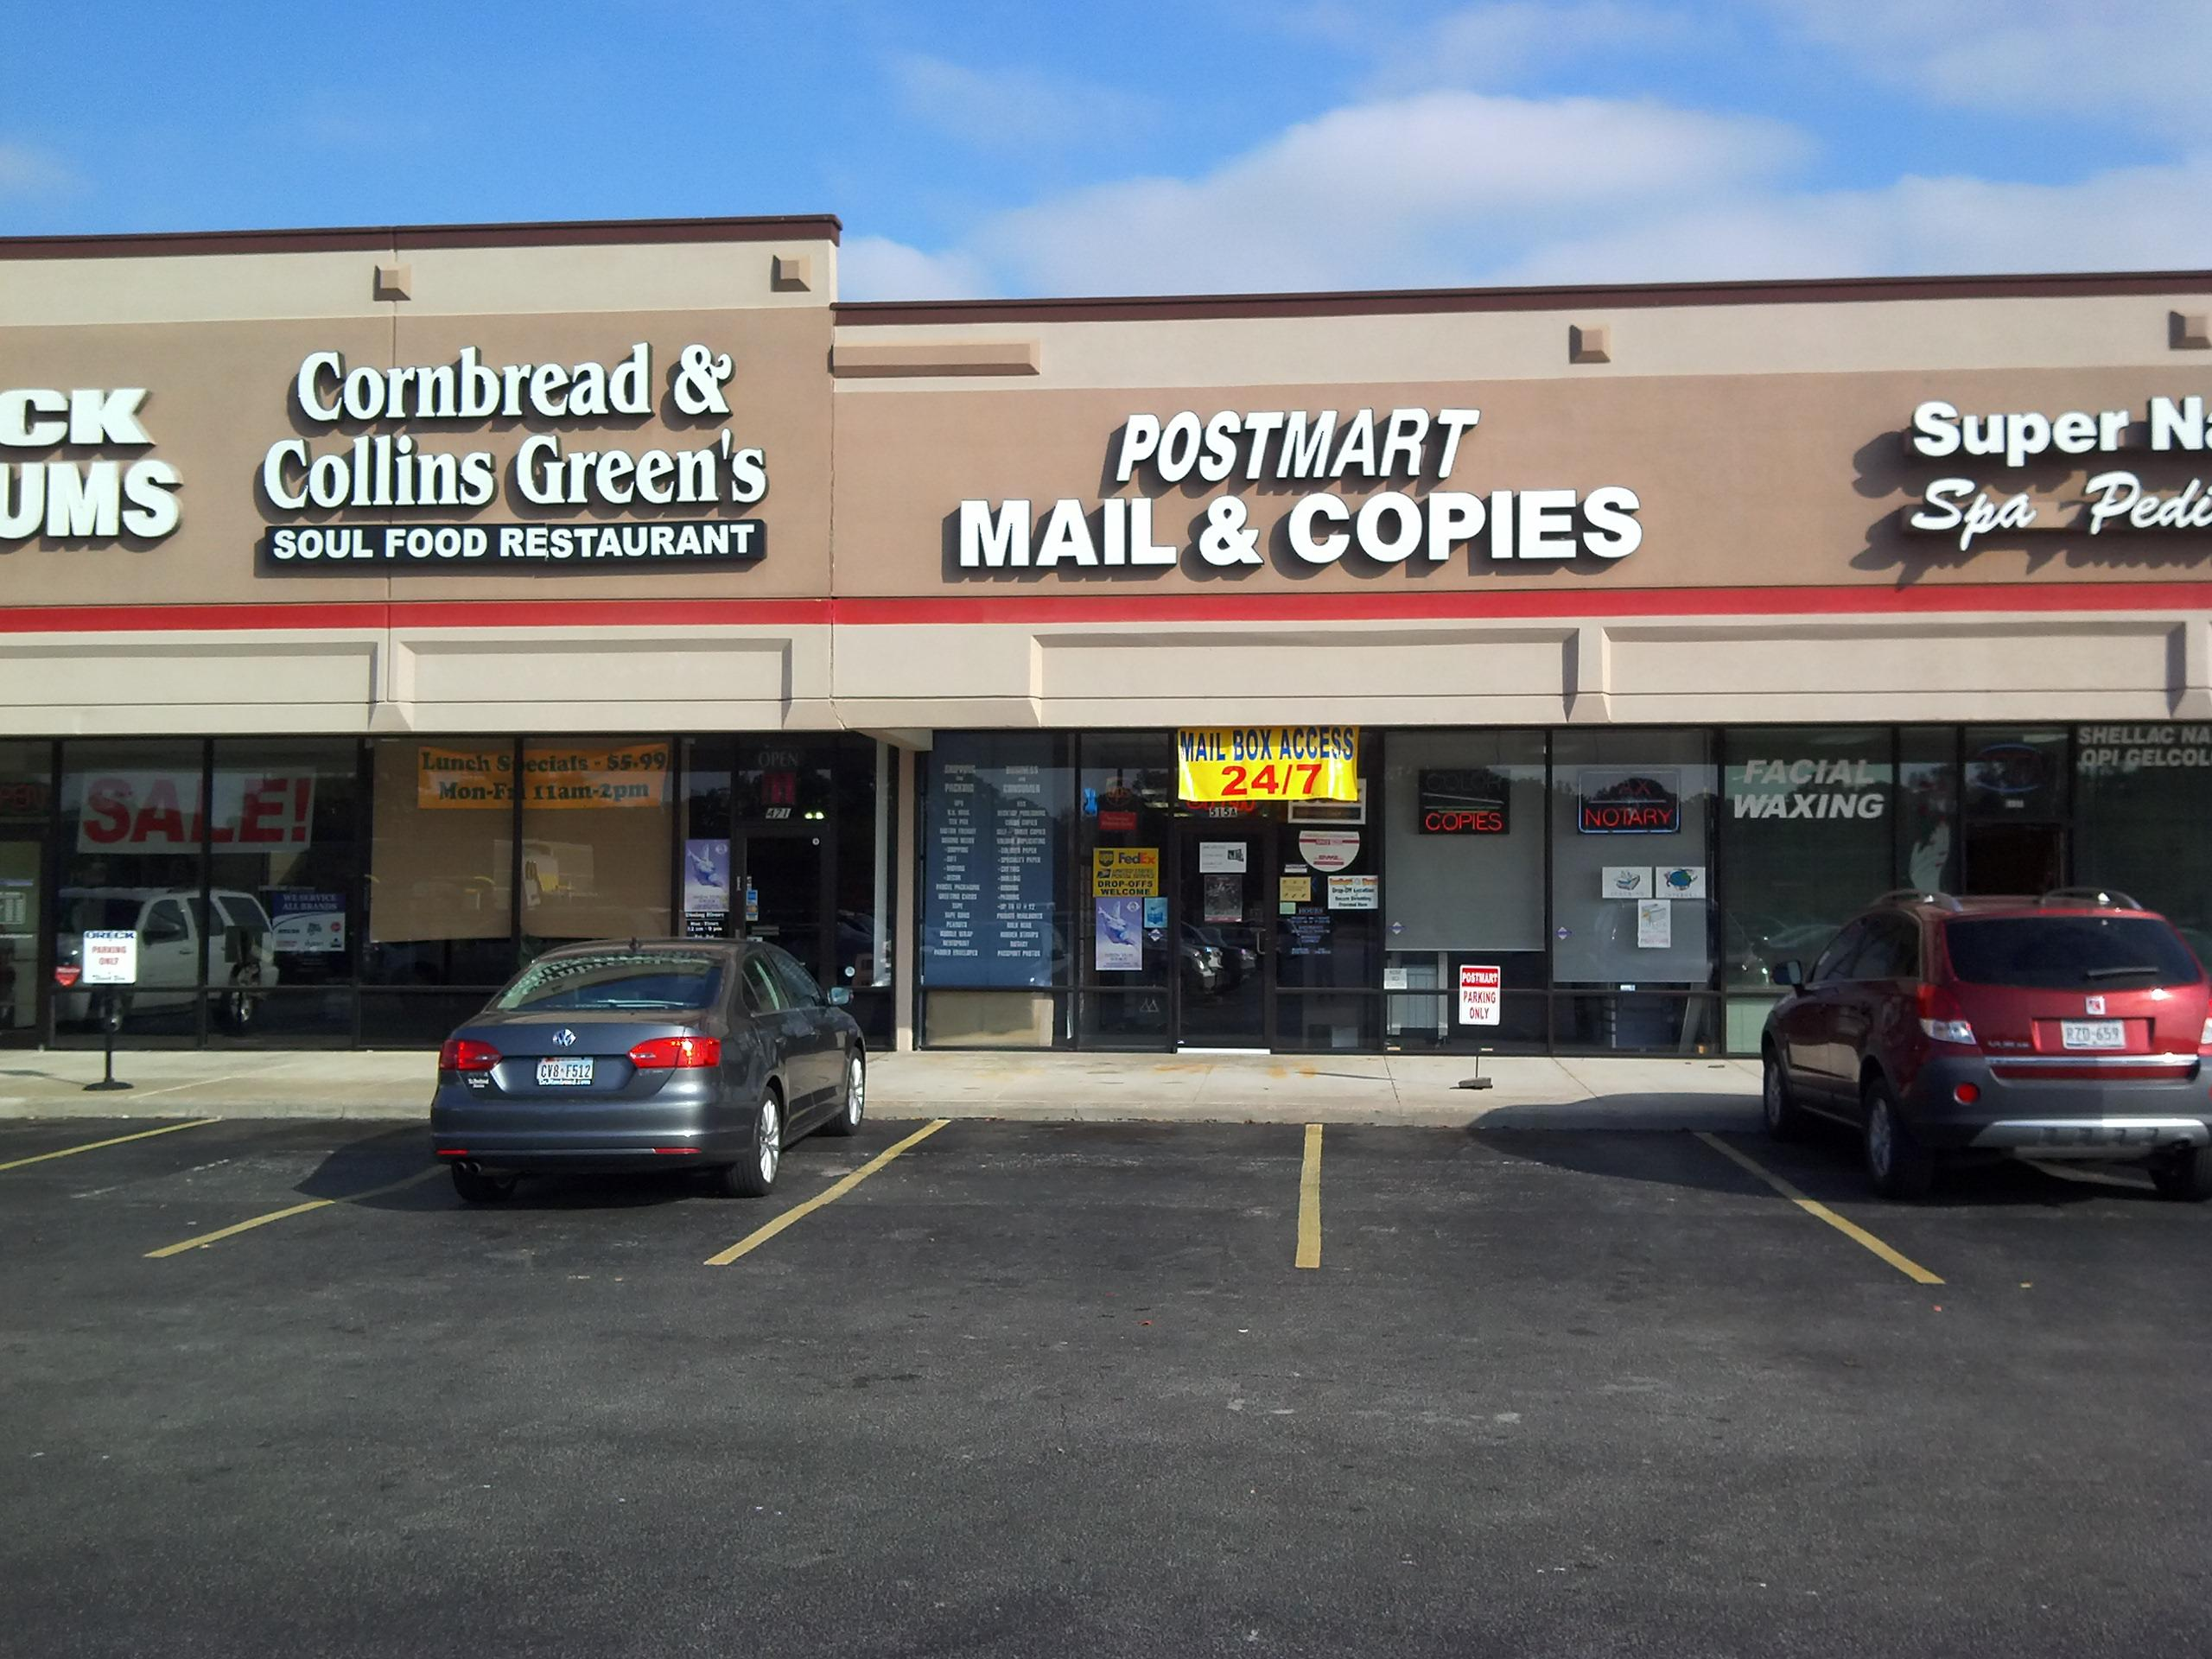 Postmart Mail & Copies image 2